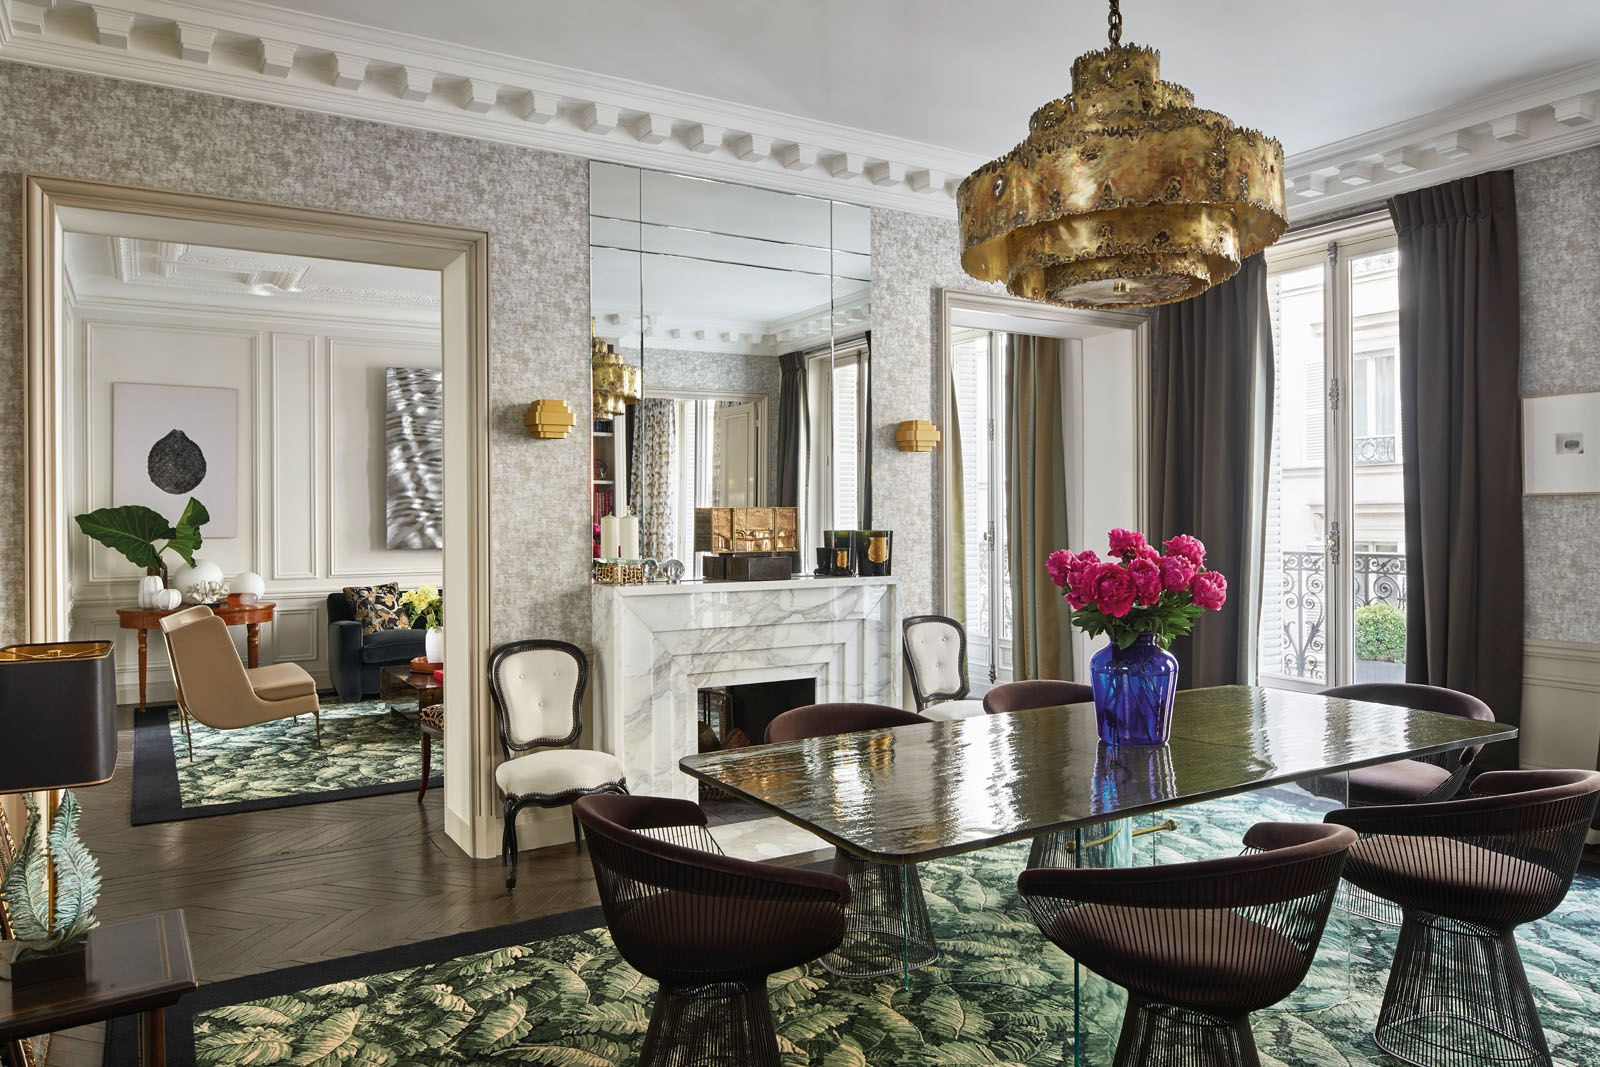 Champeau and Wilde Create Bring Modern Design To This Paris Apartment (1) champeau and wilde Champeau and Wilde Create Bring Modern Design To This Paris Apartment Champeau and Wilde Create Bring Modern Design To This Paris Apartment 1